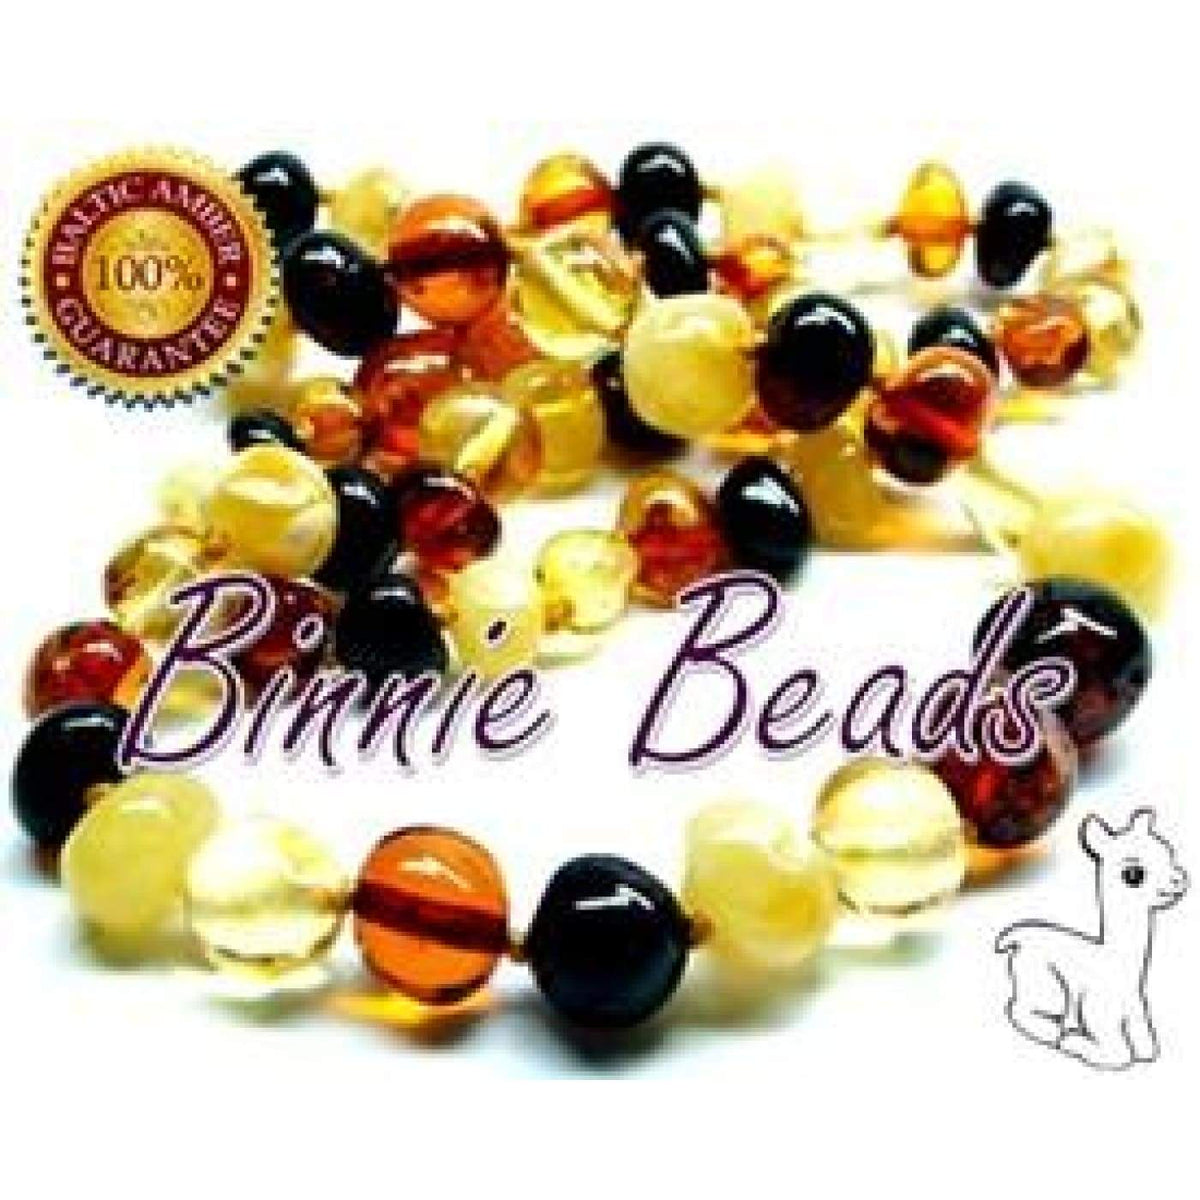 Binnie Baltic Amber Teething Baby Necklace - MultiMix 32CM - NURSING & FEEDING - TEETHERS/TEETHING JEWELLERY